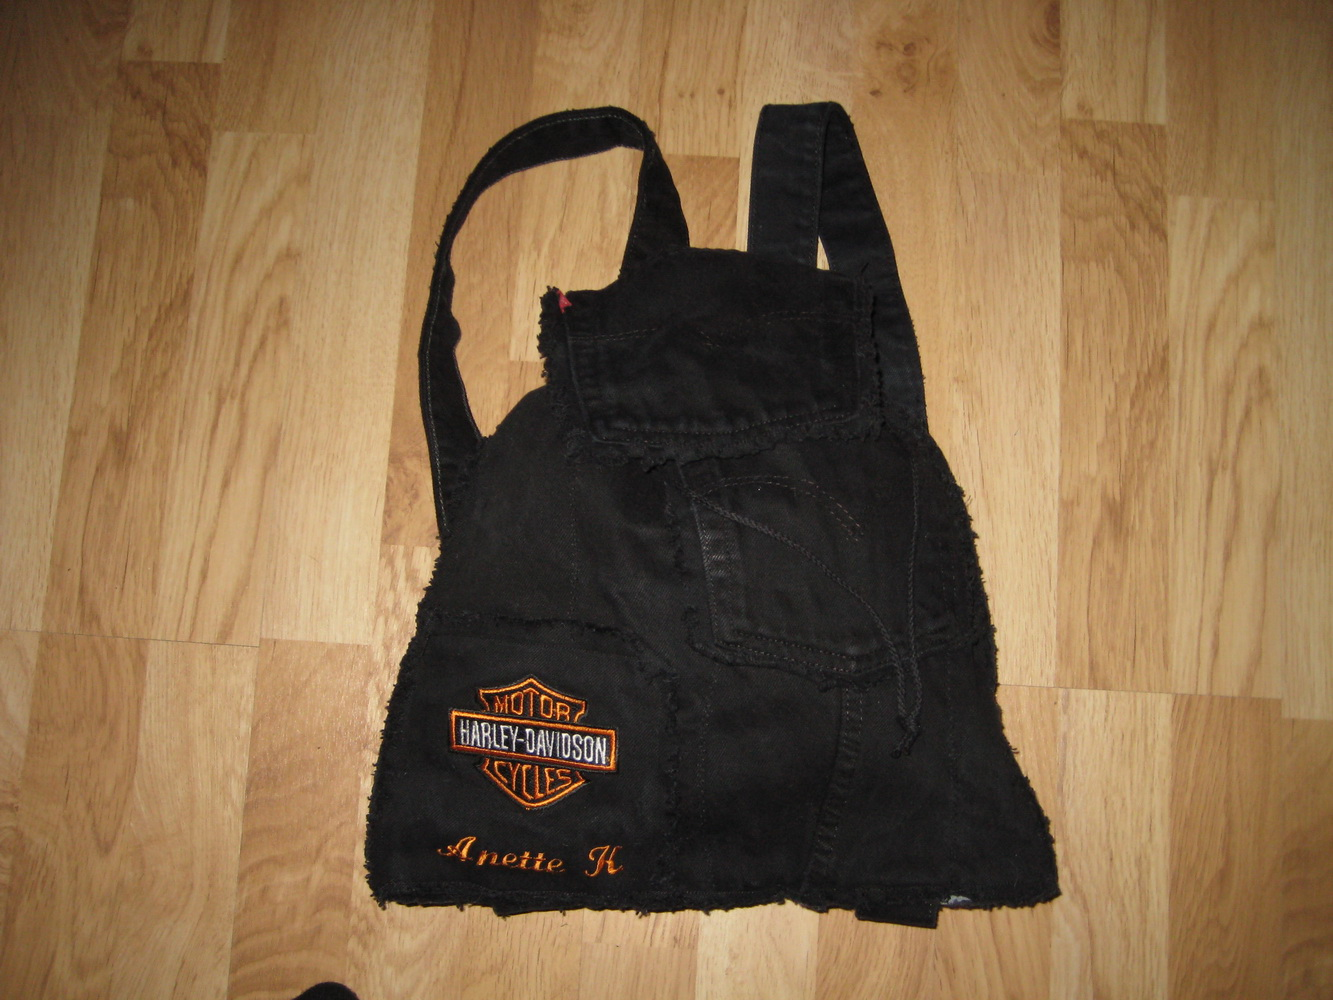 Harley Davidson logo on bag